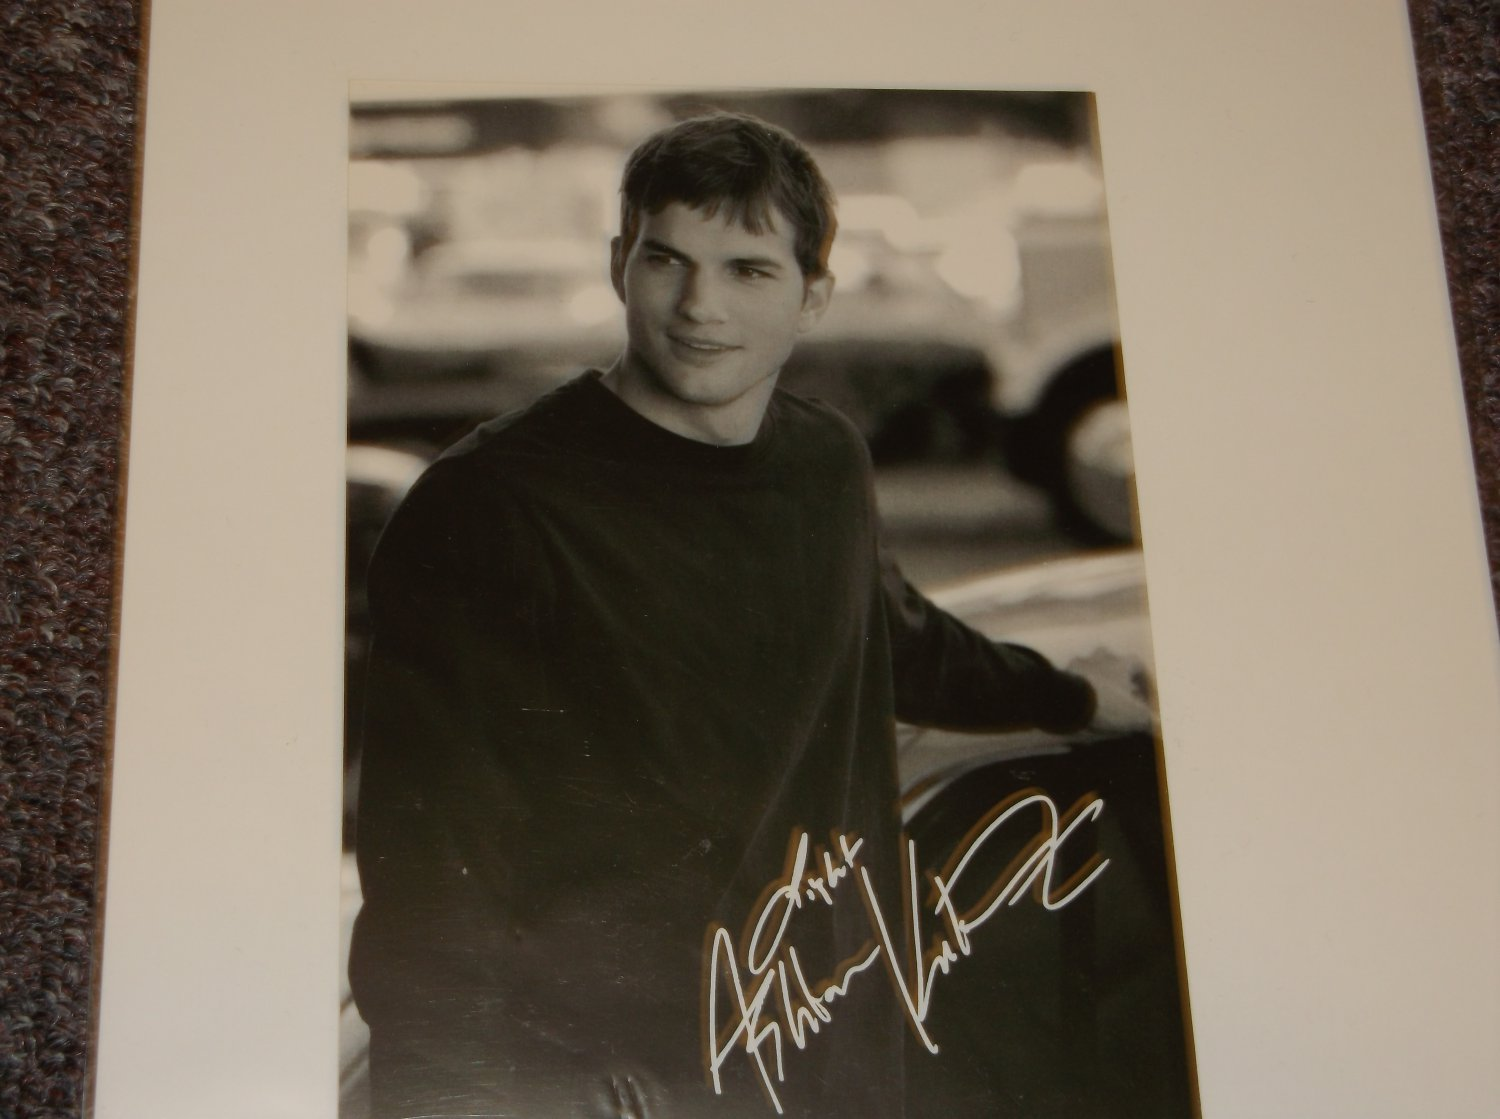 Ashton Kutcher signed reprint 5x7 photo